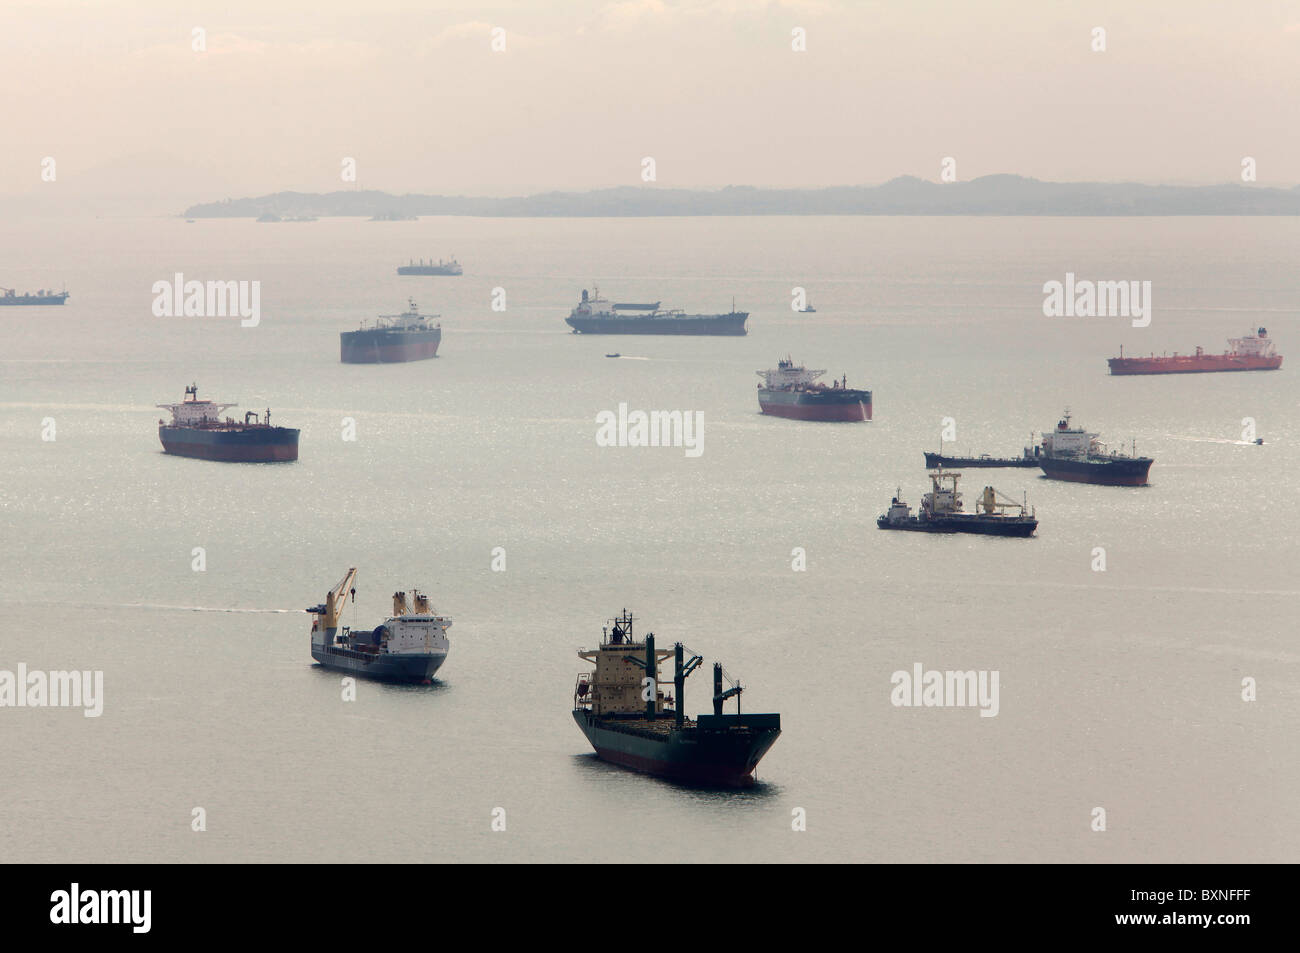 Ships waiting off shore of Singapore harbor, waiting to dock - Stock Image